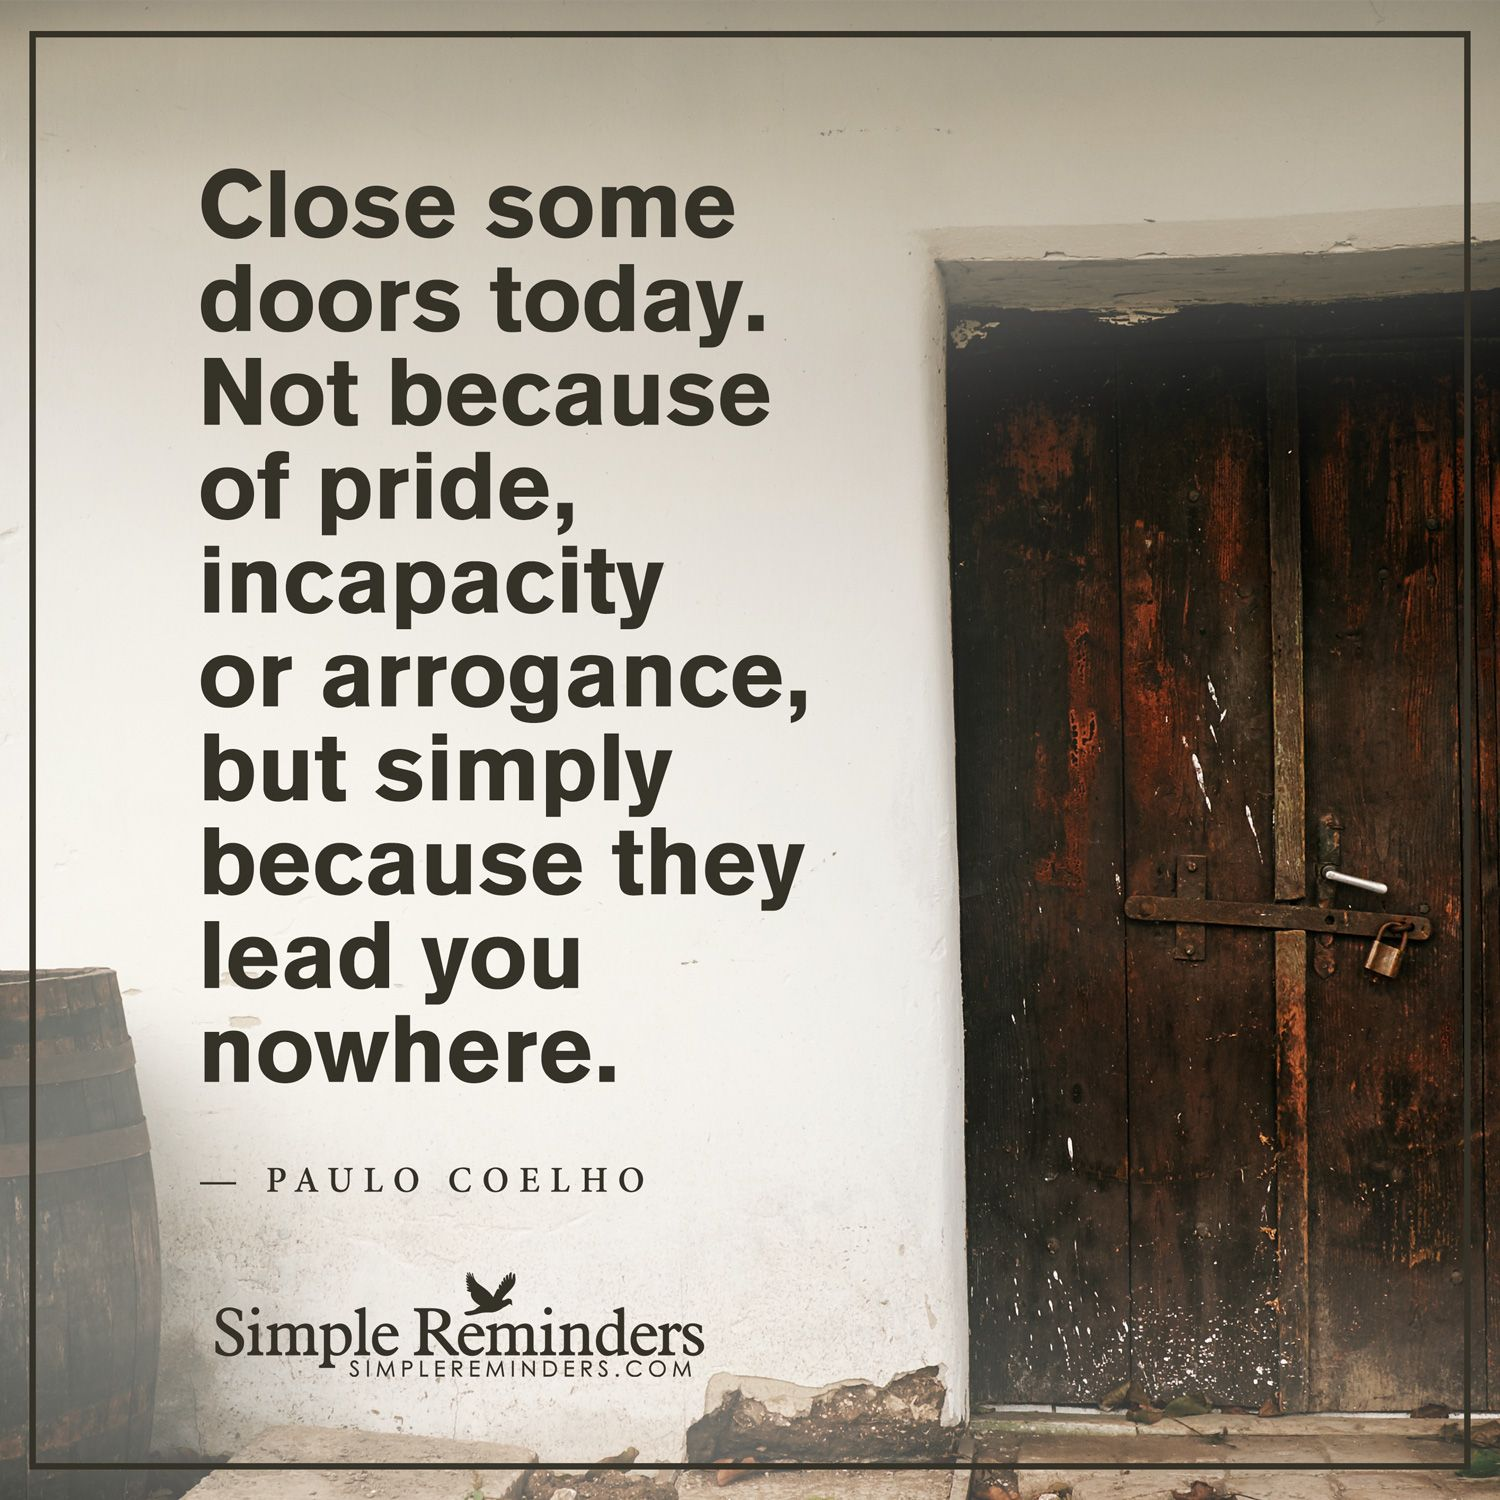 Close some doors today by Paulo Coelho  Reminder quotes, Paulo